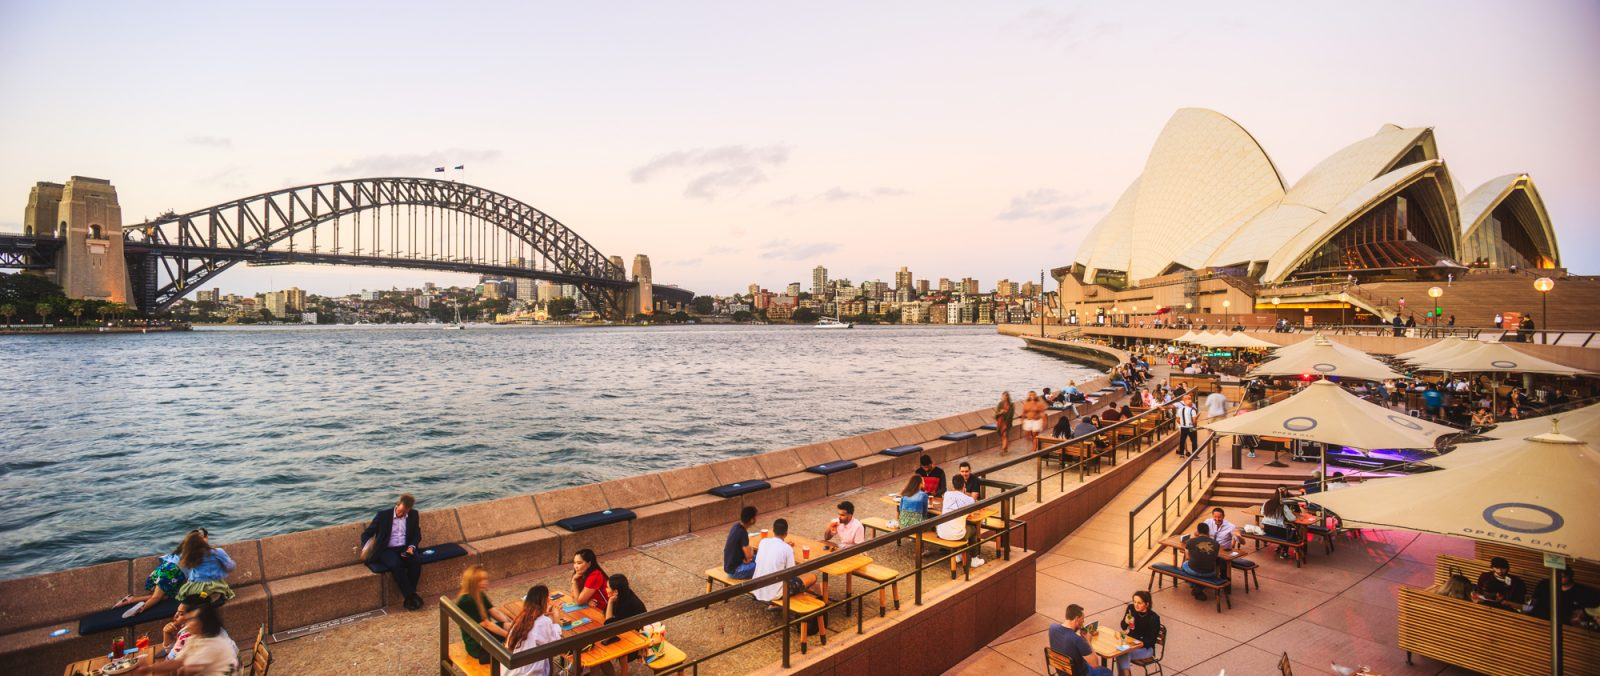 Panoramic view of Opera House and Harbour Bridge